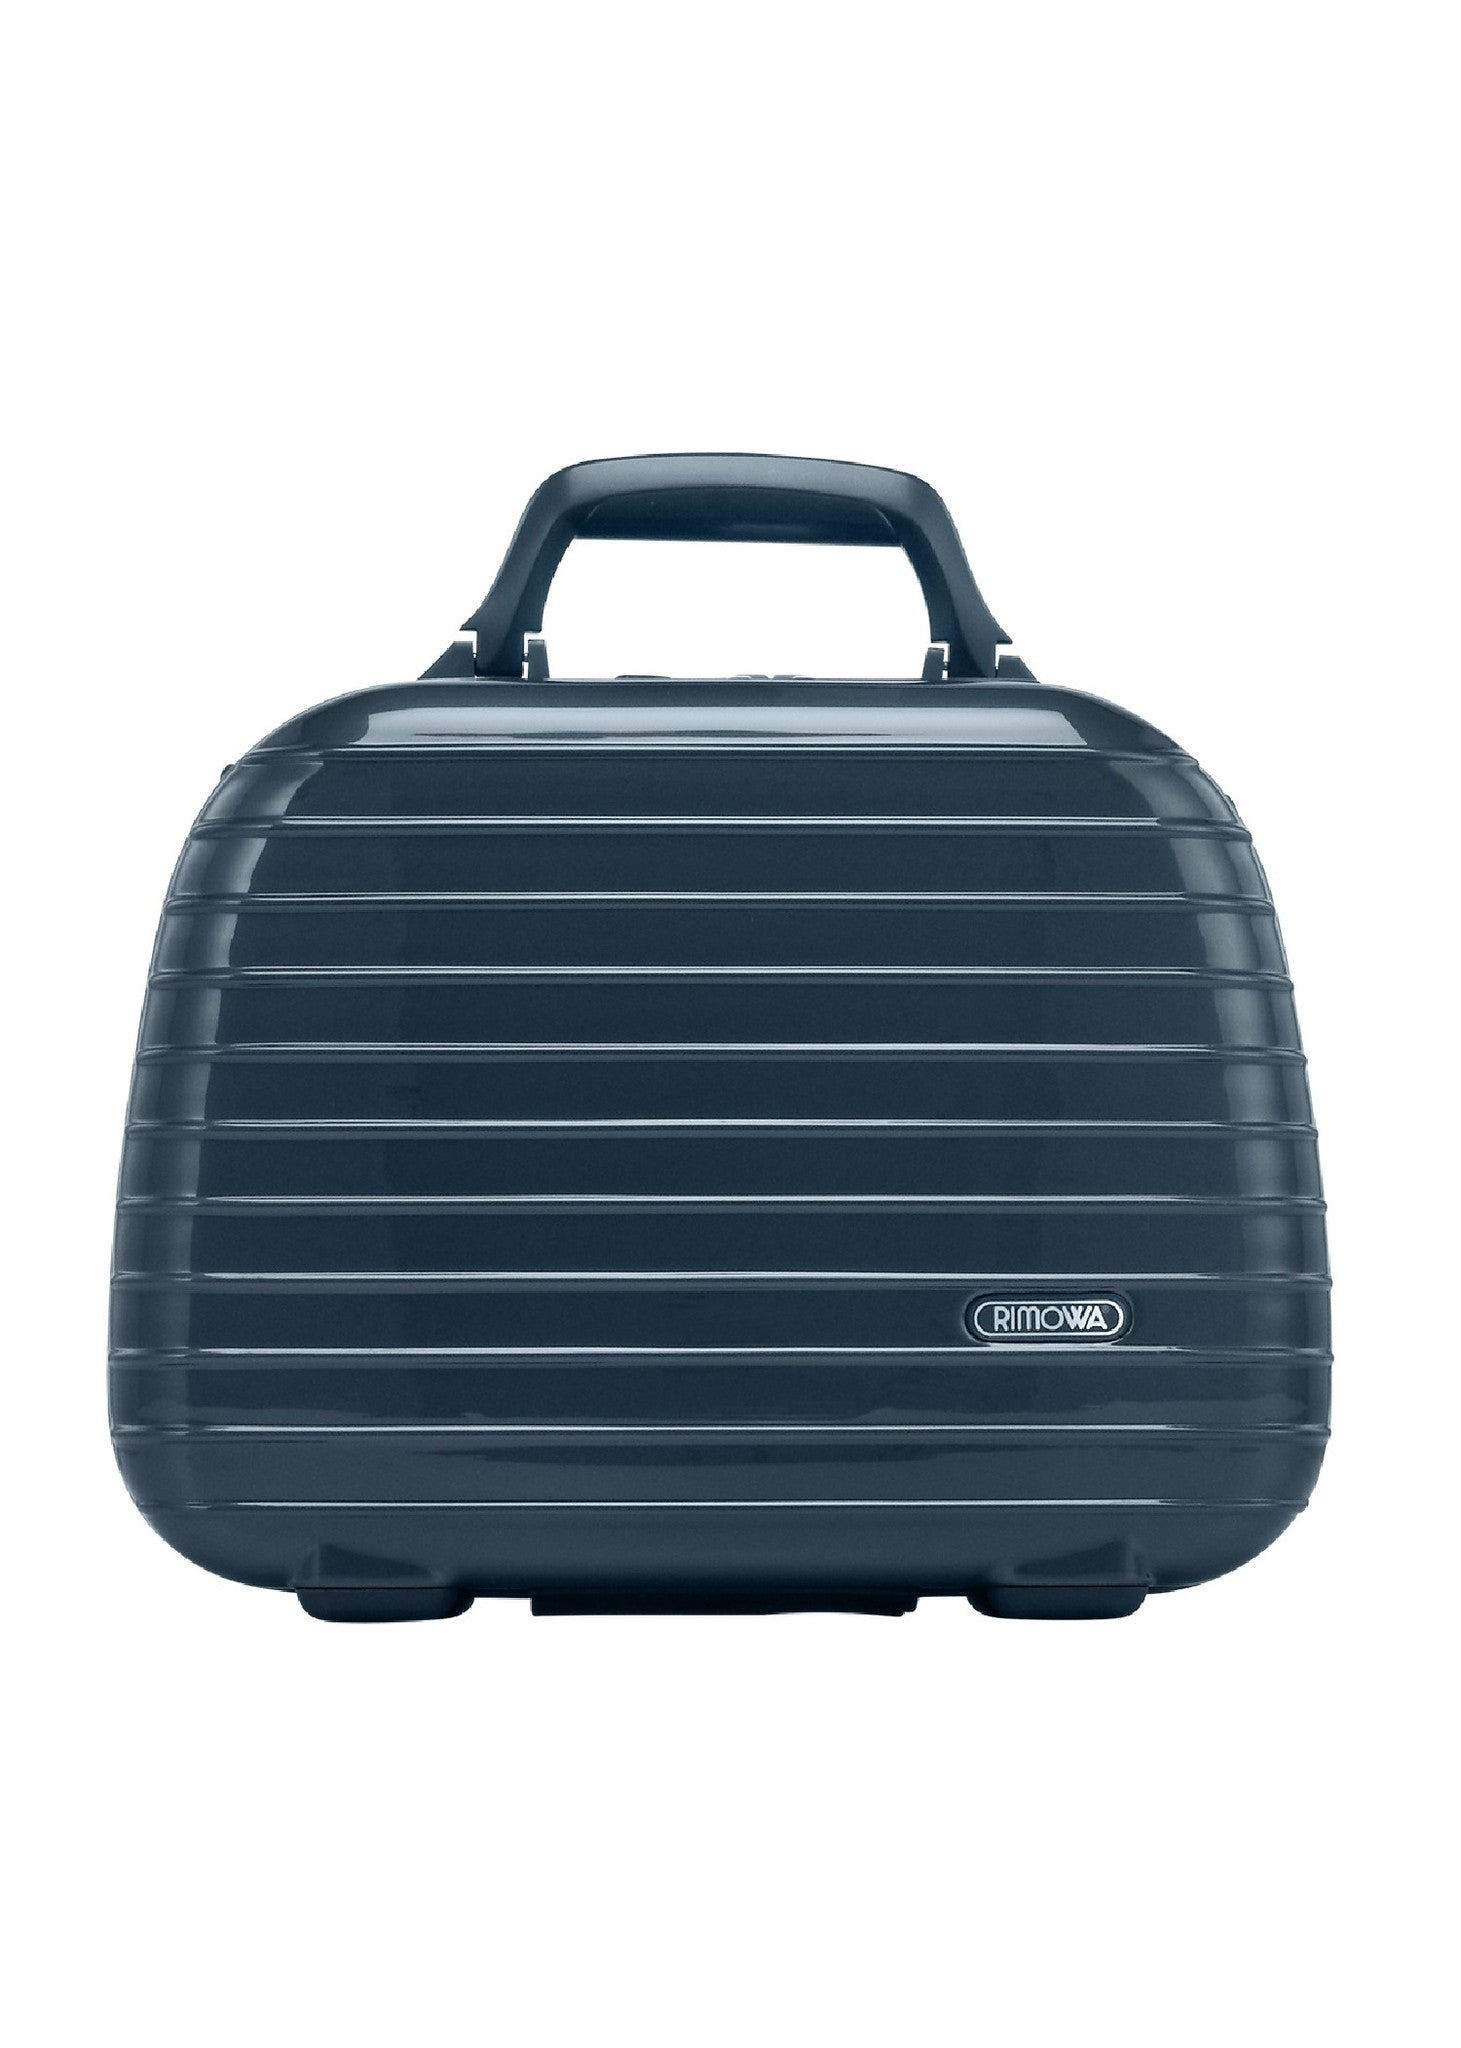 Rimowa Salsa Deluxe Beauty Case - Yachting Blue | MEGO